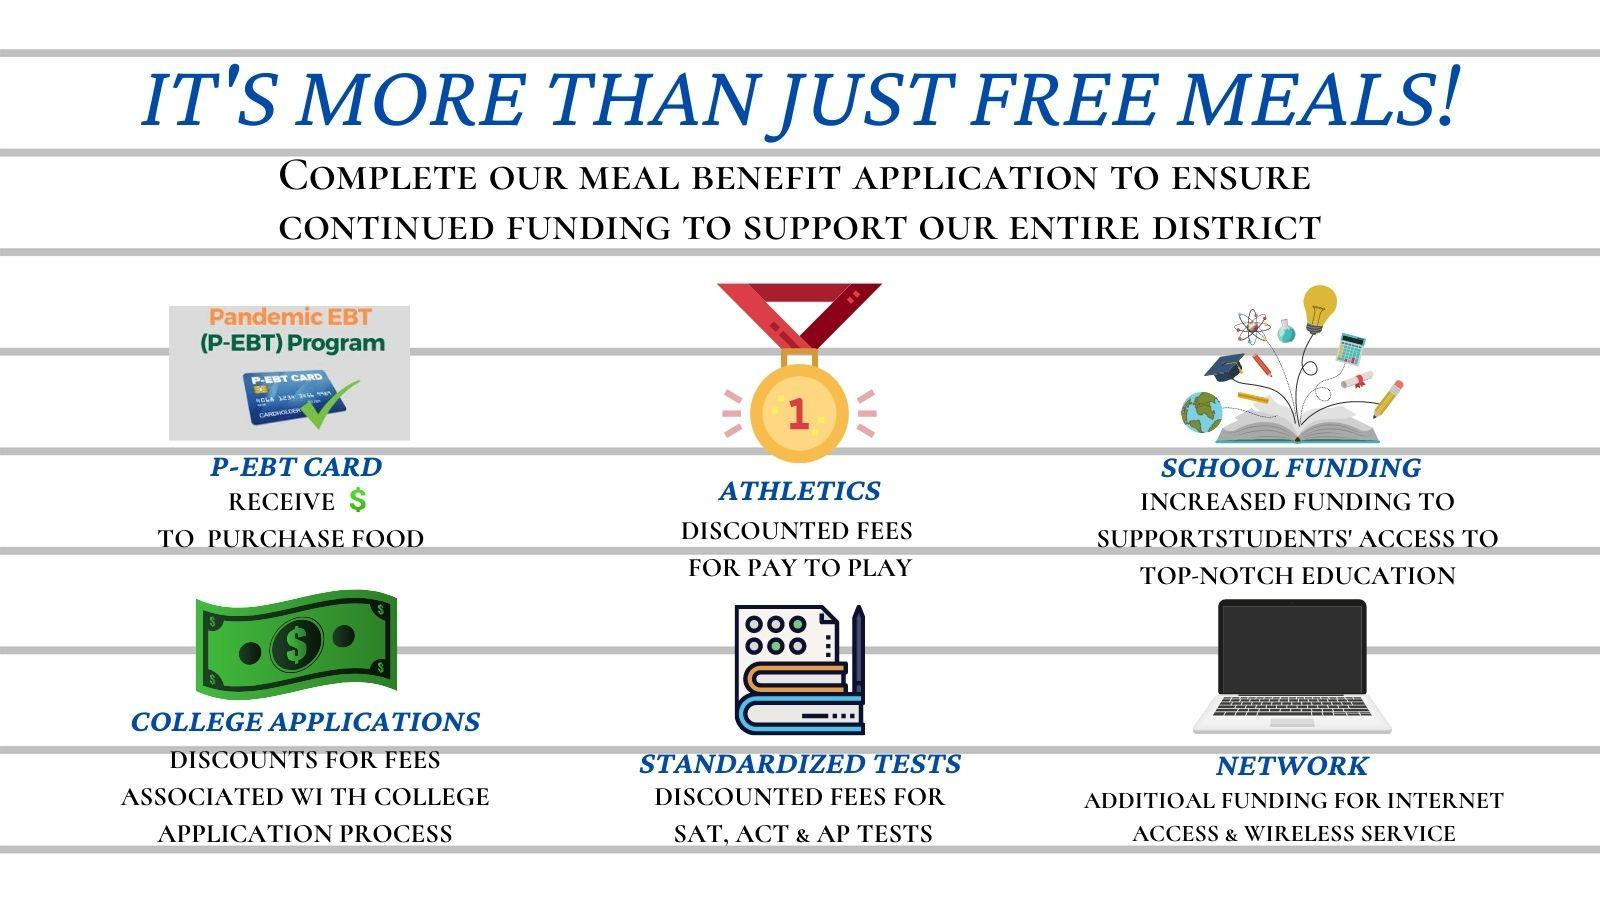 More than just Free Meals